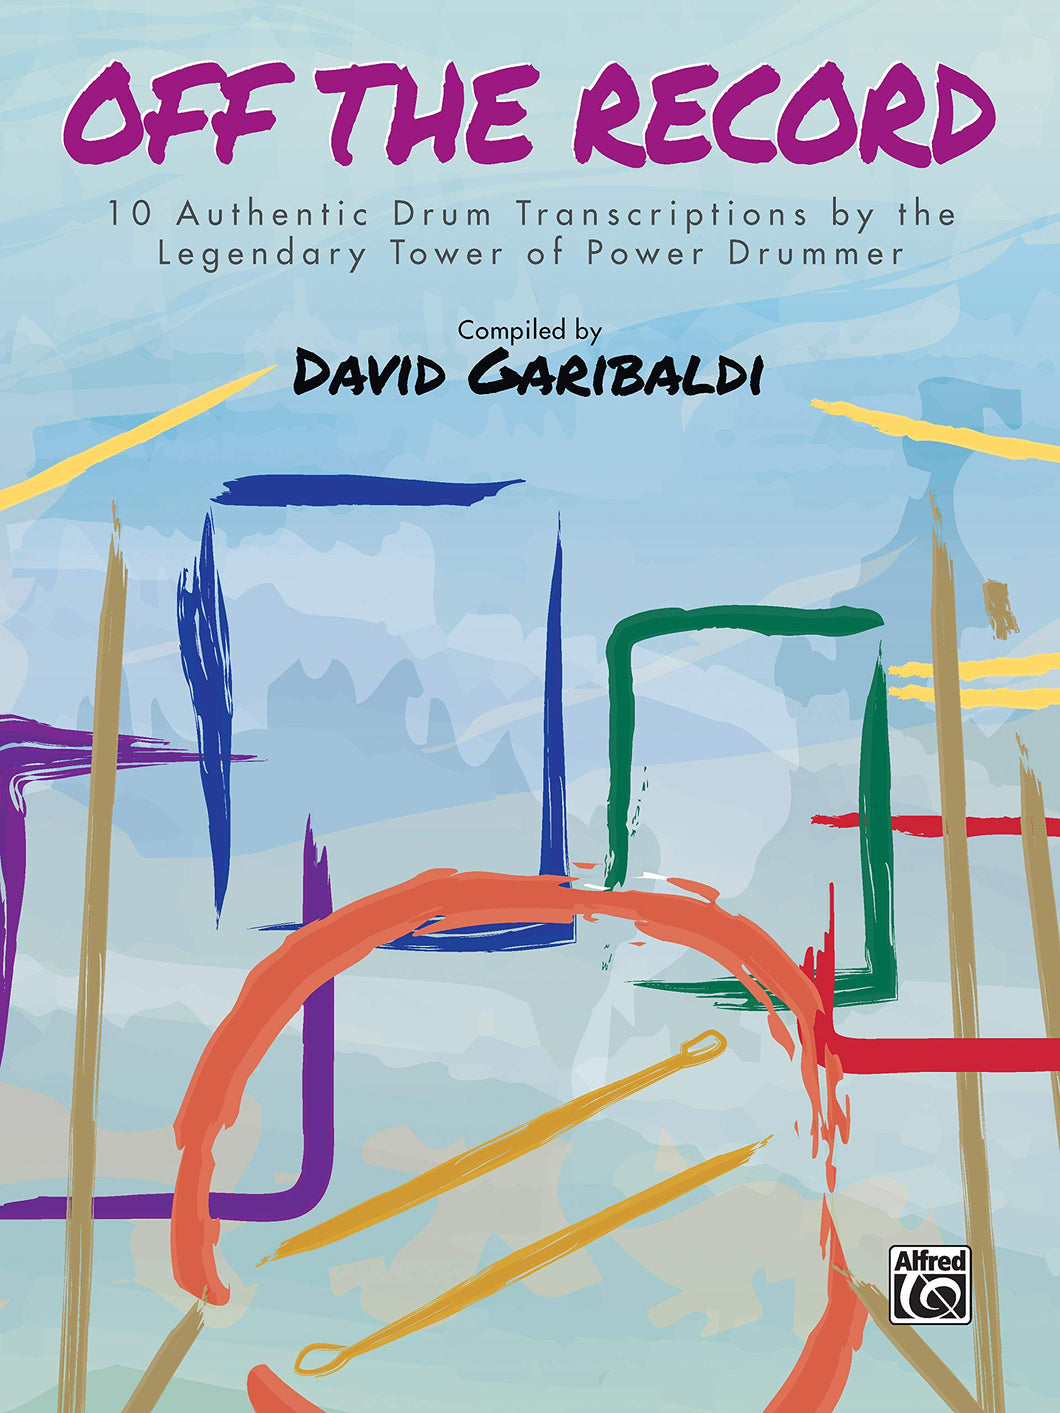 On the Serious Side - David Garibaldi - Collection of Drum Transcriptions / Drum Sheet Music - Alfred Music DGOTR